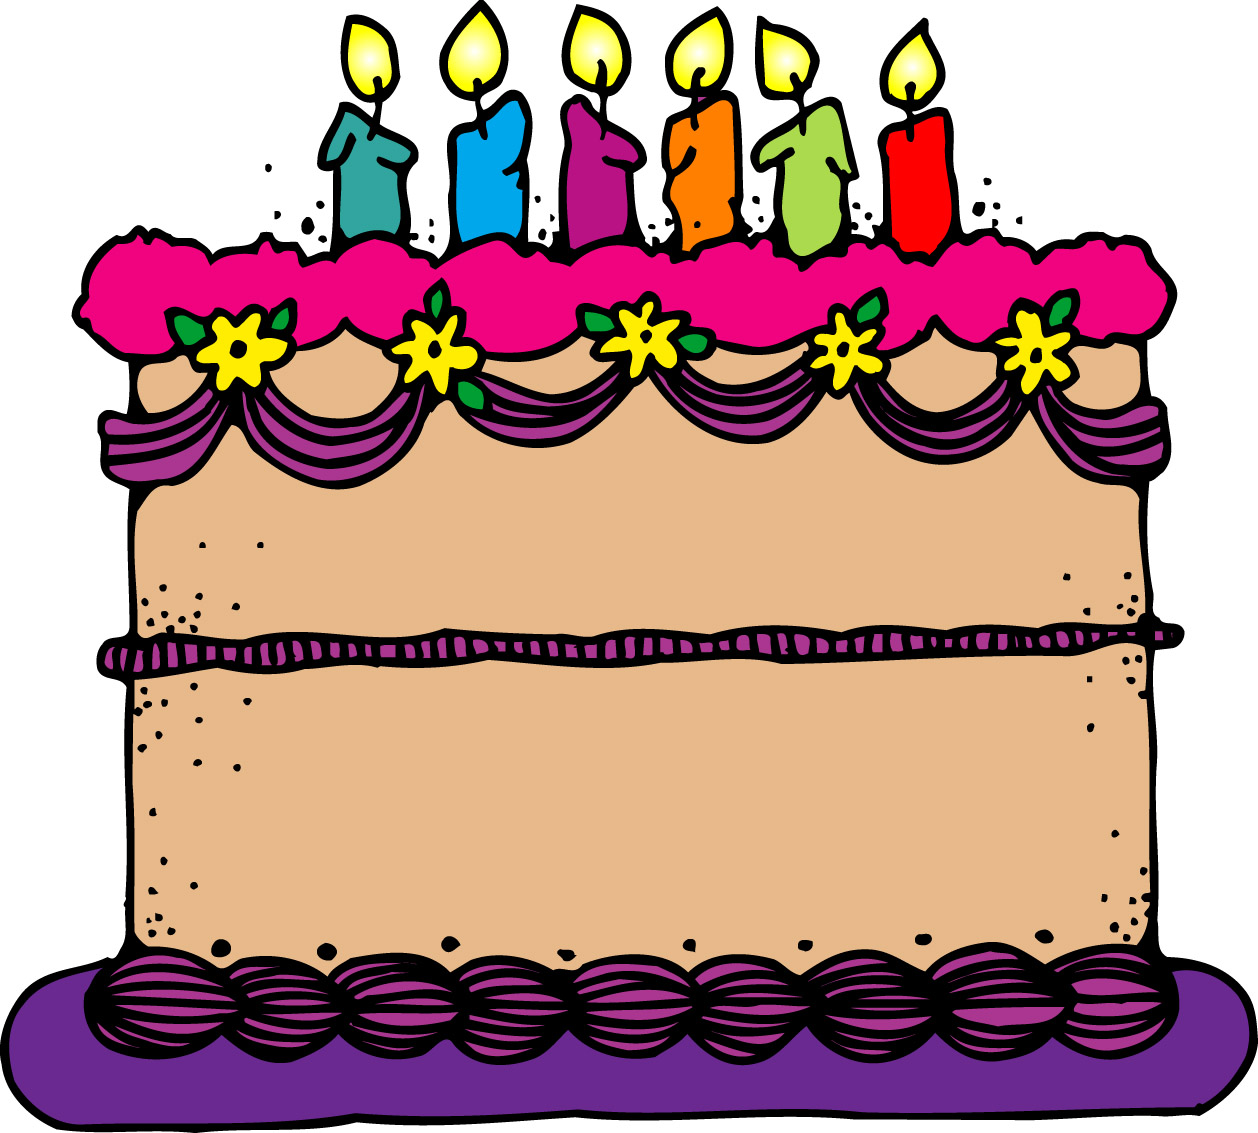 Birthday Cake Clip Art Free .-Birthday cake clip art free .-17